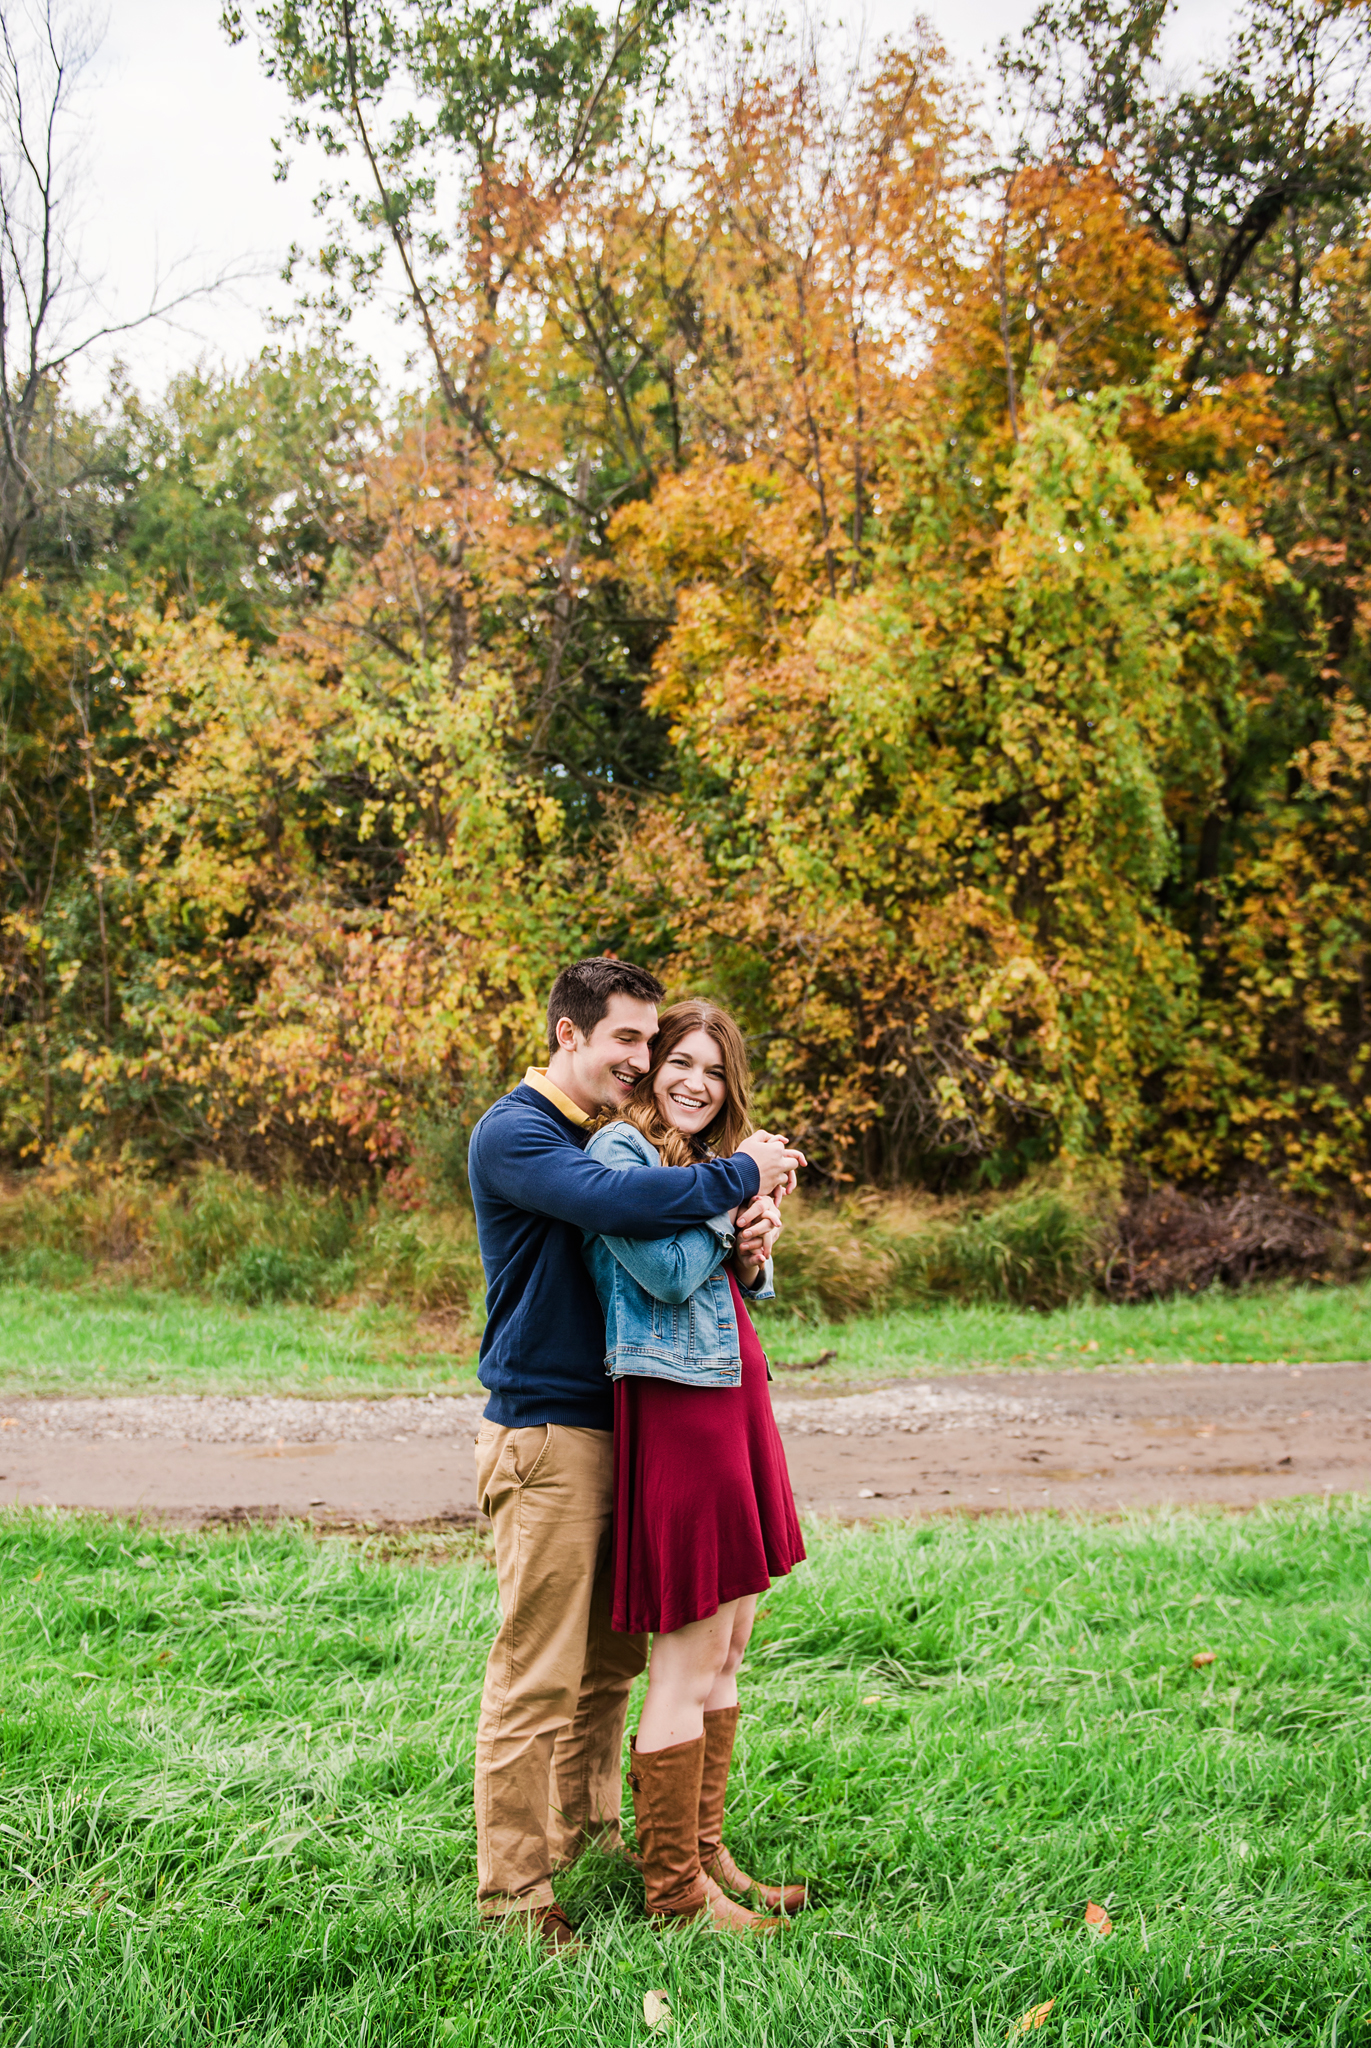 Becker_Farms_Buffalo_Engagement_Session_JILL_STUDIO_Rochester_NY_Photographer_DSC_4657.jpg